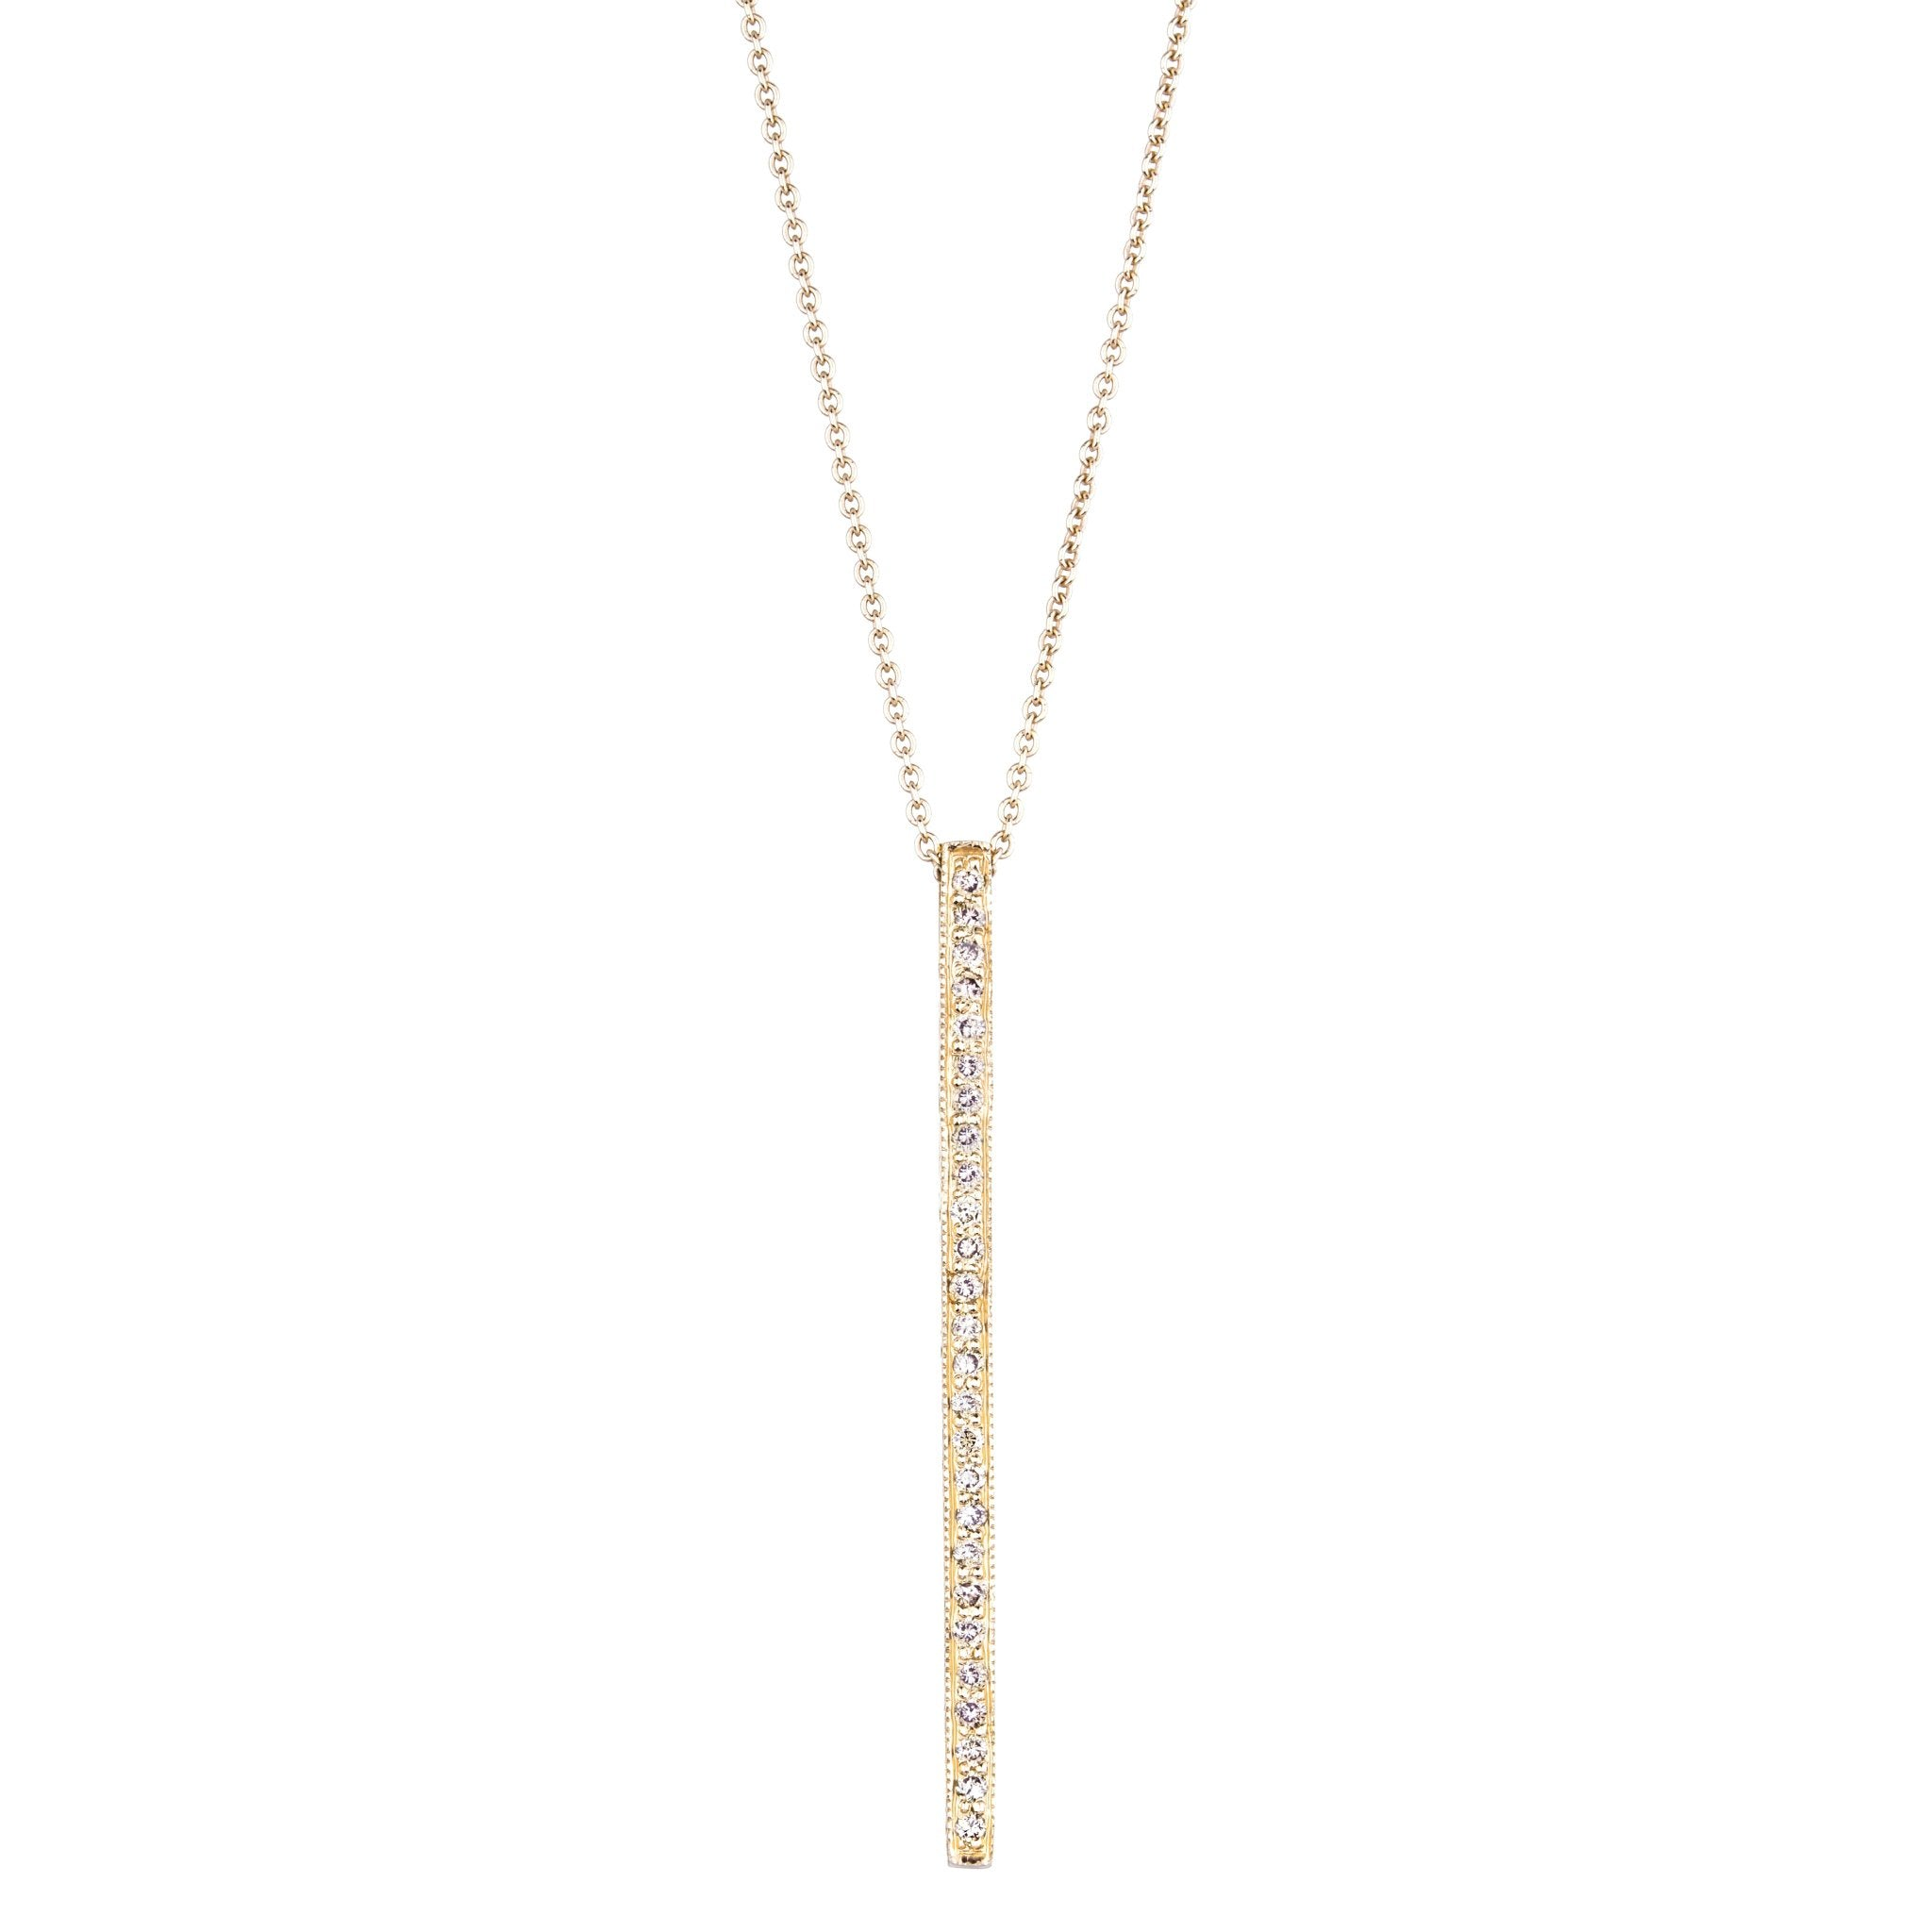 The Alice Necklace 18K Yellow Gold